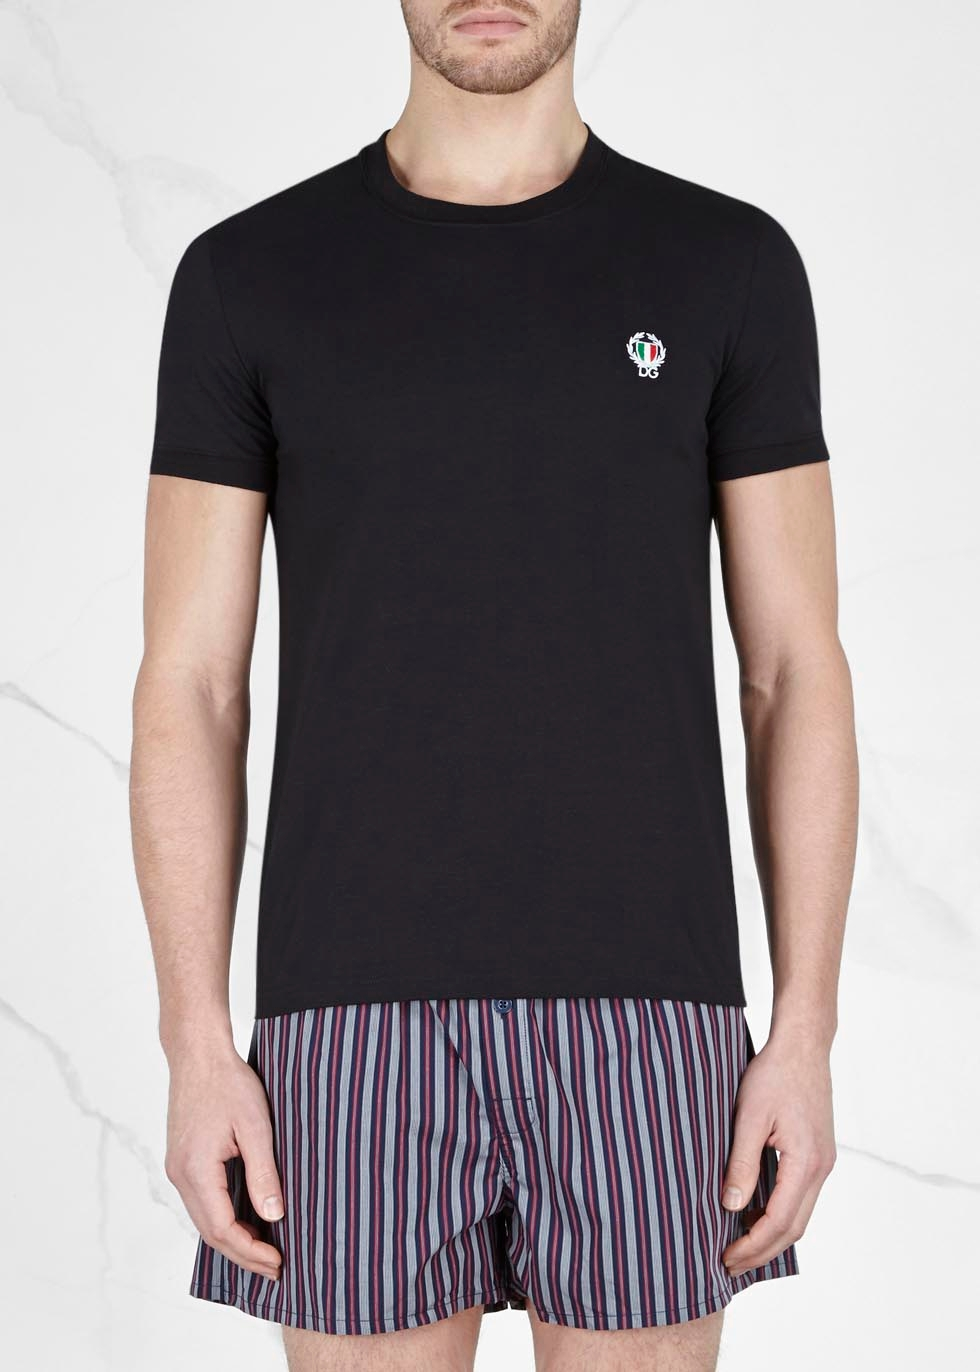 Black stretch cotton T-shirt - Dolce & Gabbana